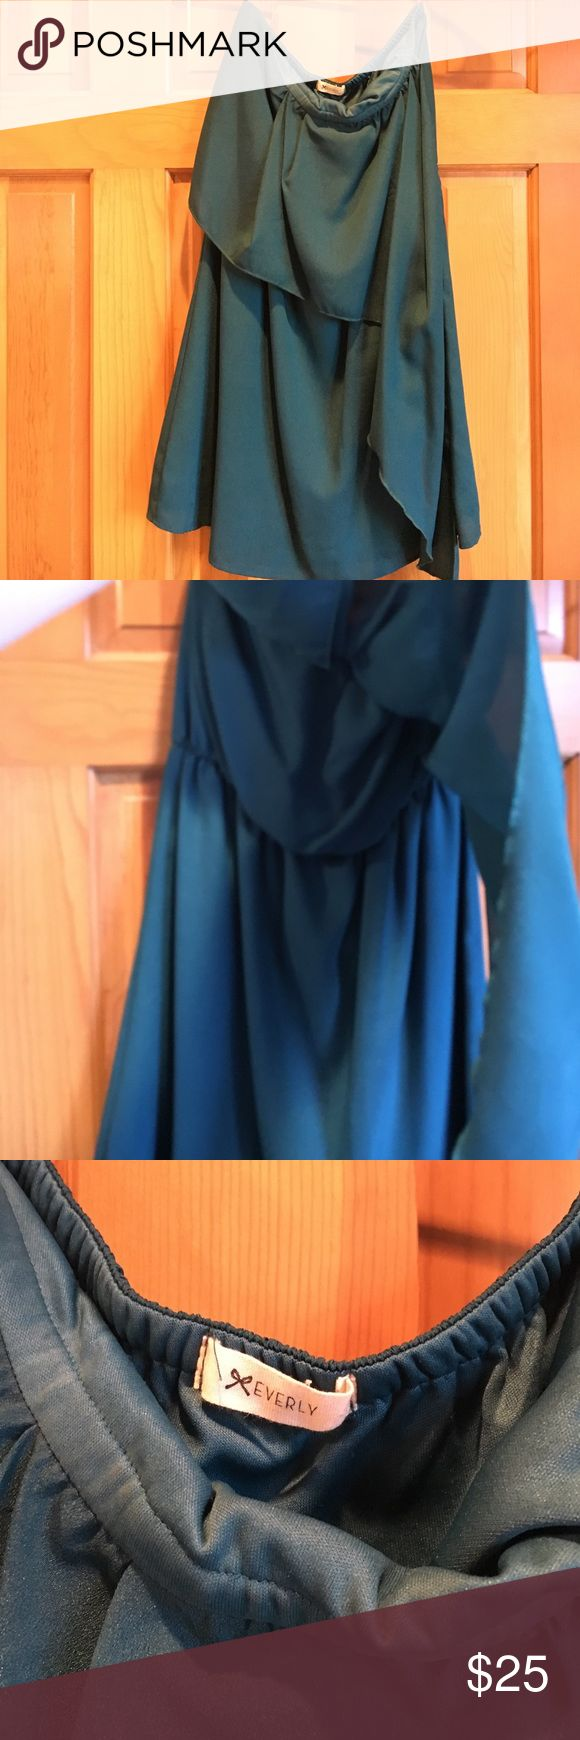 Dark teal strapless dress Dark teal strapless formal dress. Cinched at the middle with extra fabric on one side that looks like a flap on the top Everly Dresses Mini